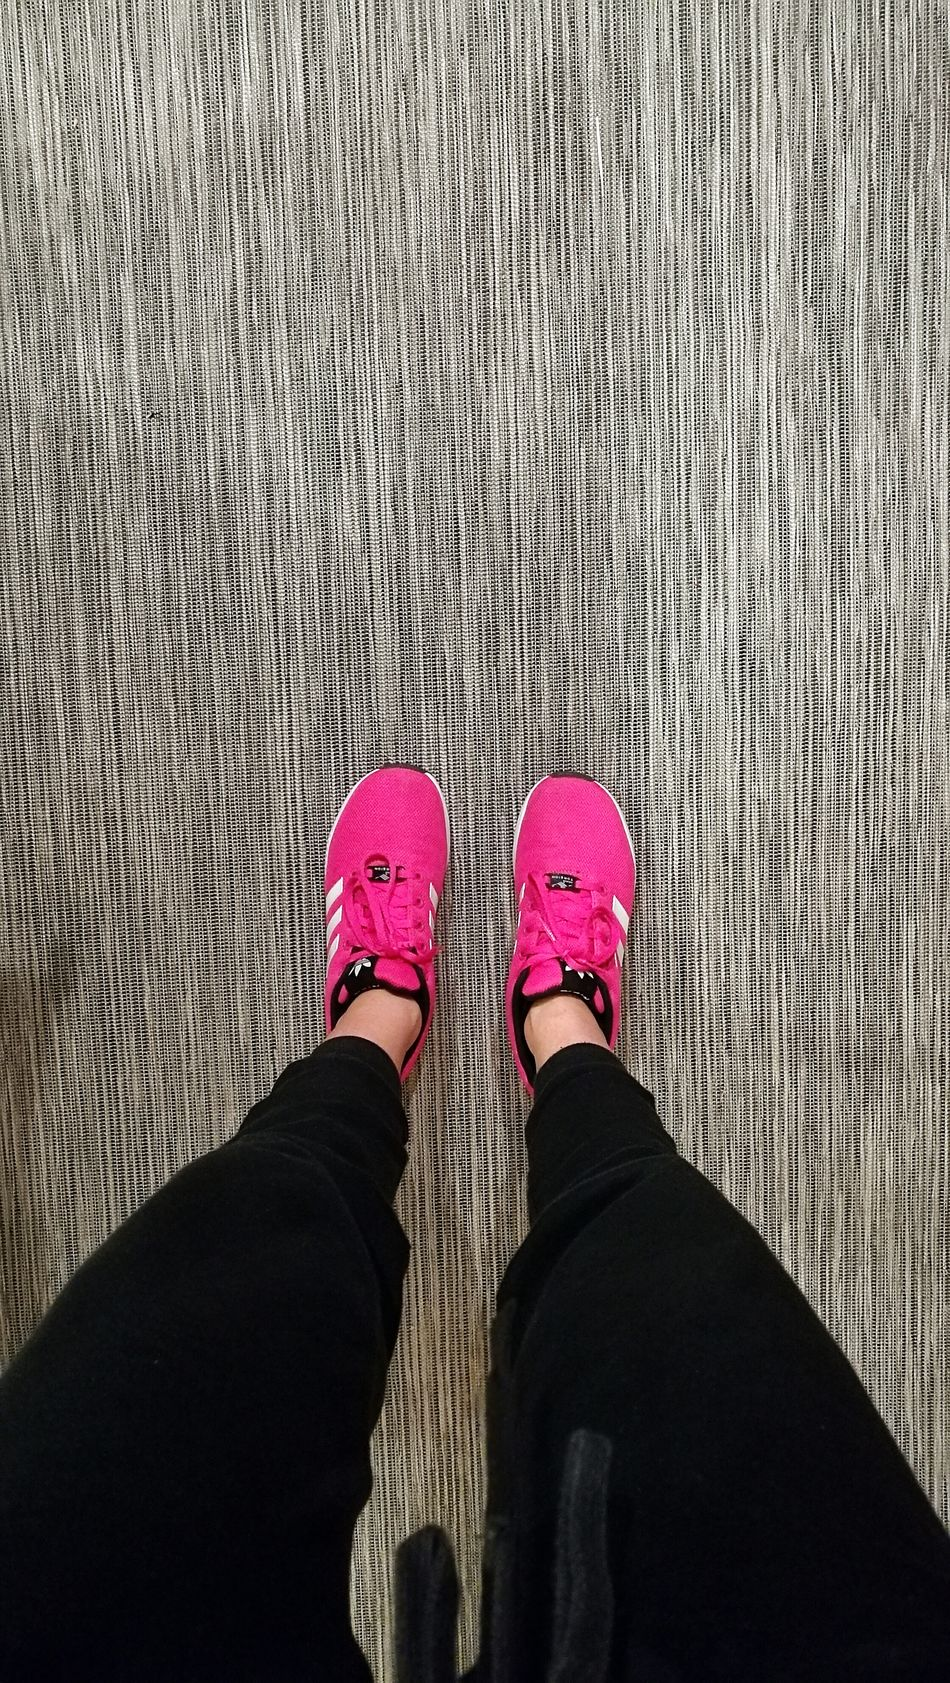 Shoe Low Section One Person Personal Perspective Standing Pants People Outdoors Ready To Go Gym Time Night Sessions Sport Squats Adidas Adidasoriginals Adidas Originals Pink